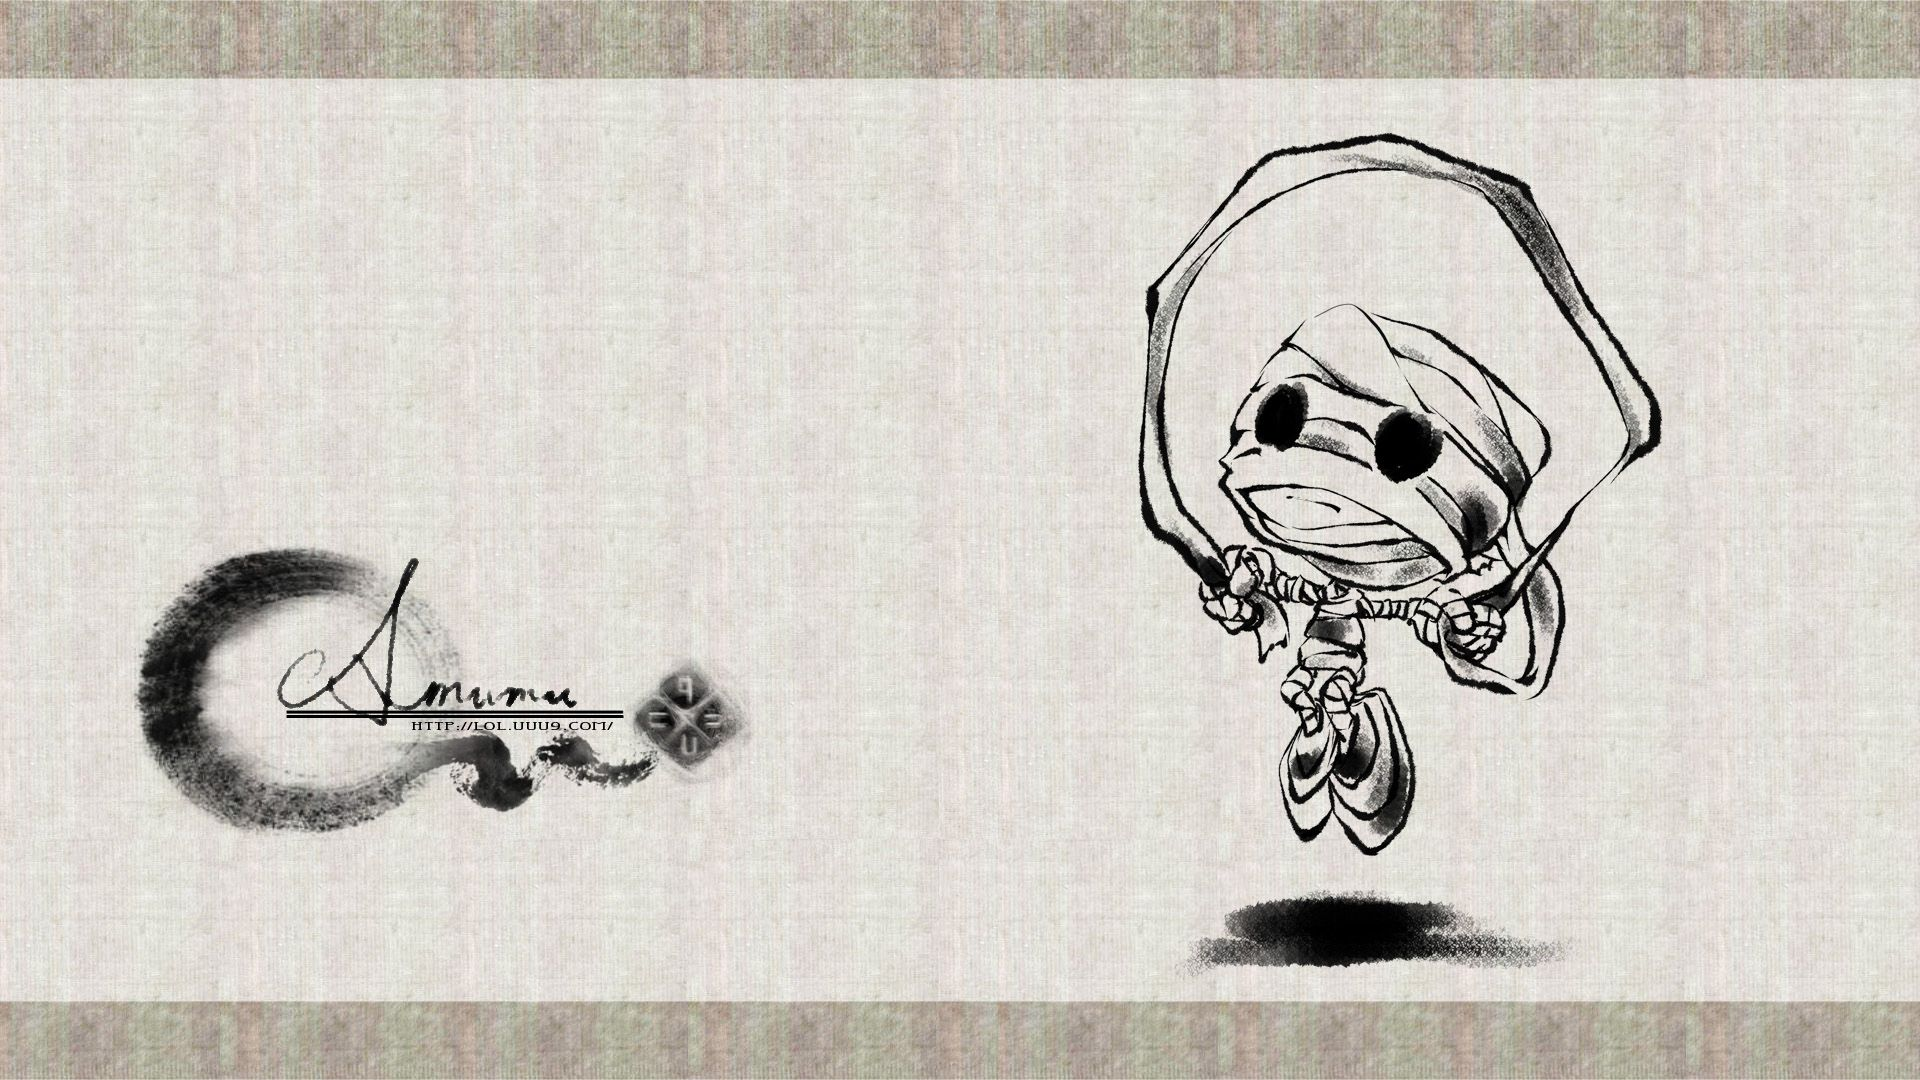 Ink Amumu -- OMG the cuteness.  Look at him jumping rope with his bandages.  Cutest little mummy ever.